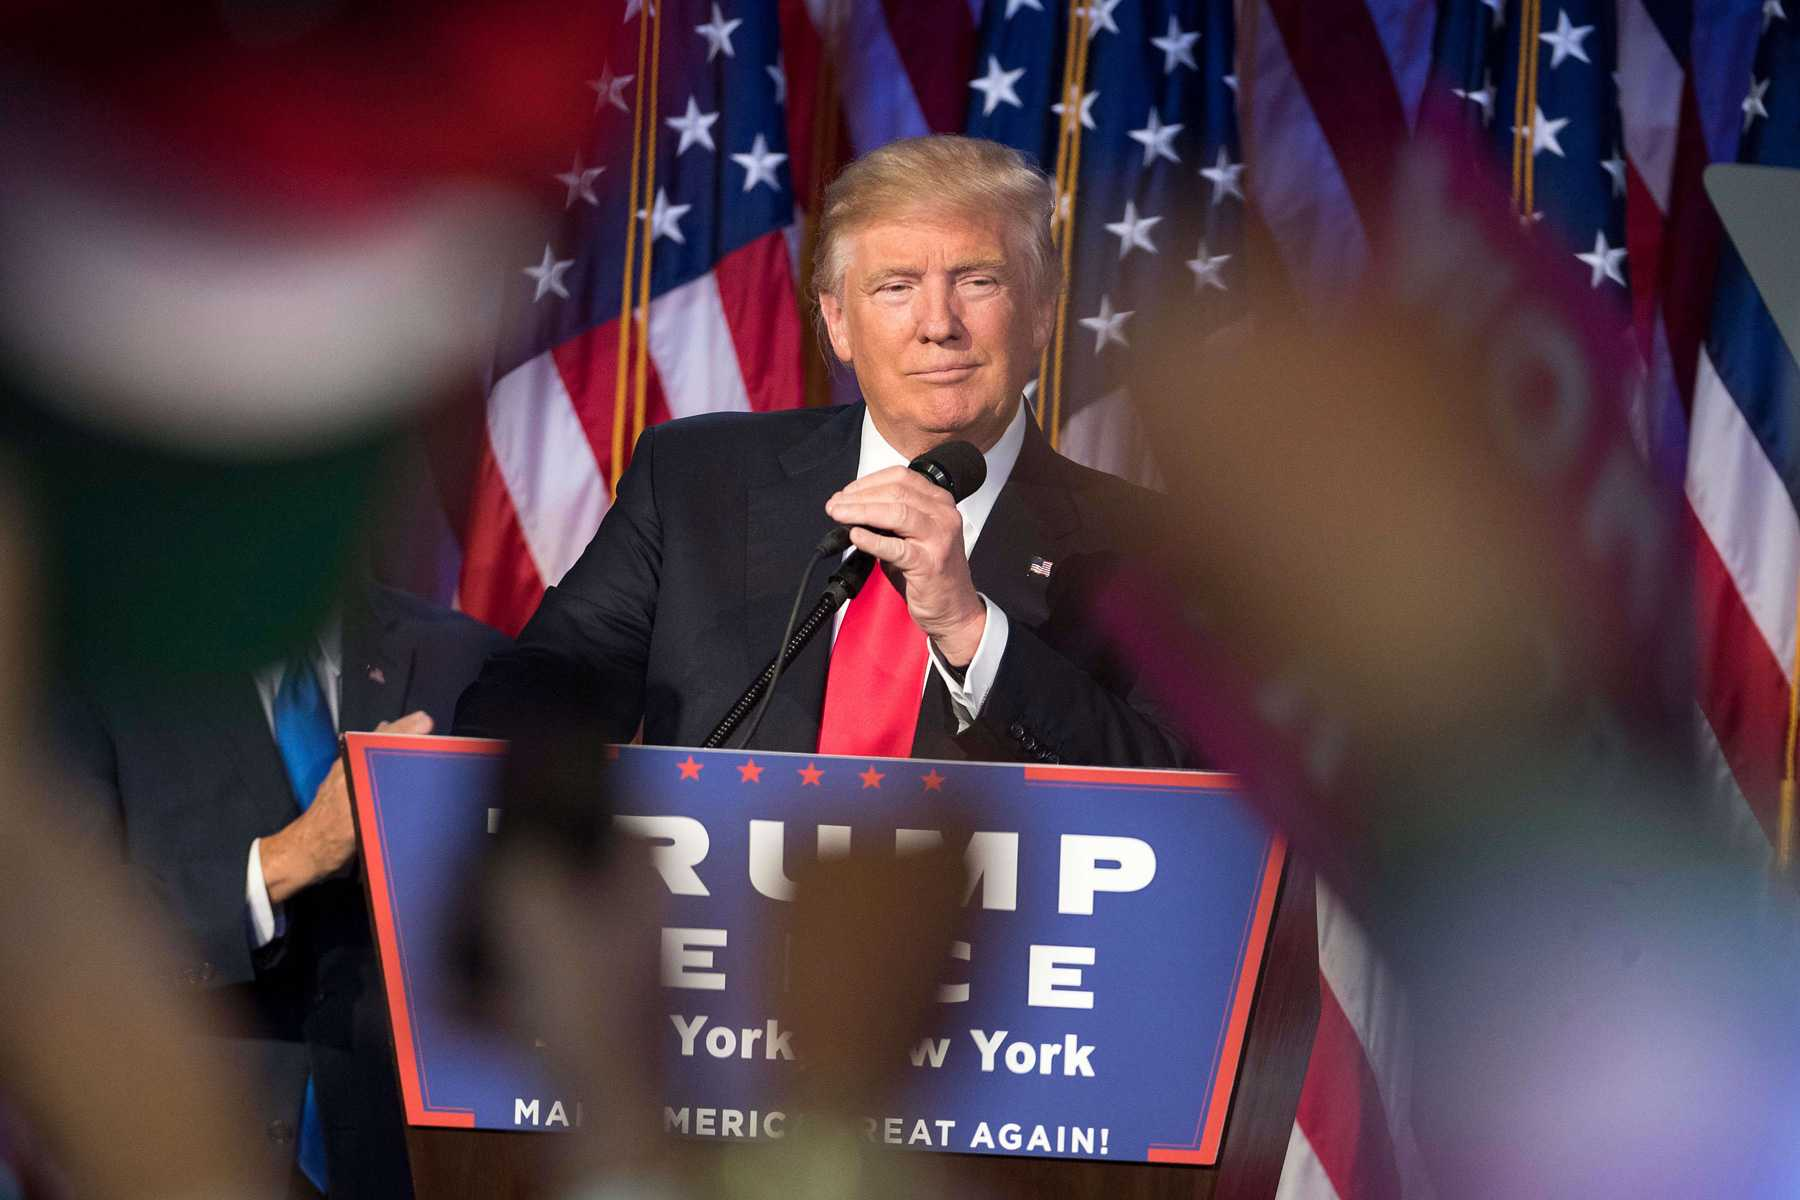 President-elect Donald Trump speaks to supporters at the Election Night Party at the Hilton Midtown Hotel in New York City on Wednesday, Nov. 9, 2016.